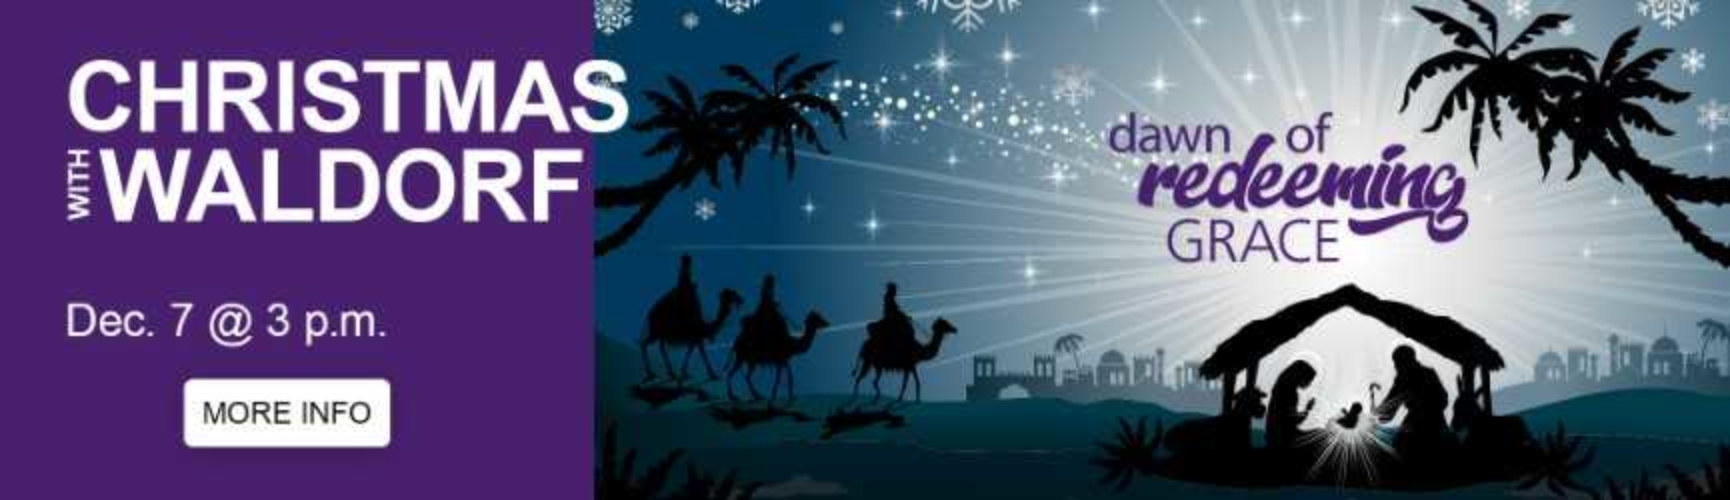 Christmas With Waldorf Banner Dawn of Redeeming Grace